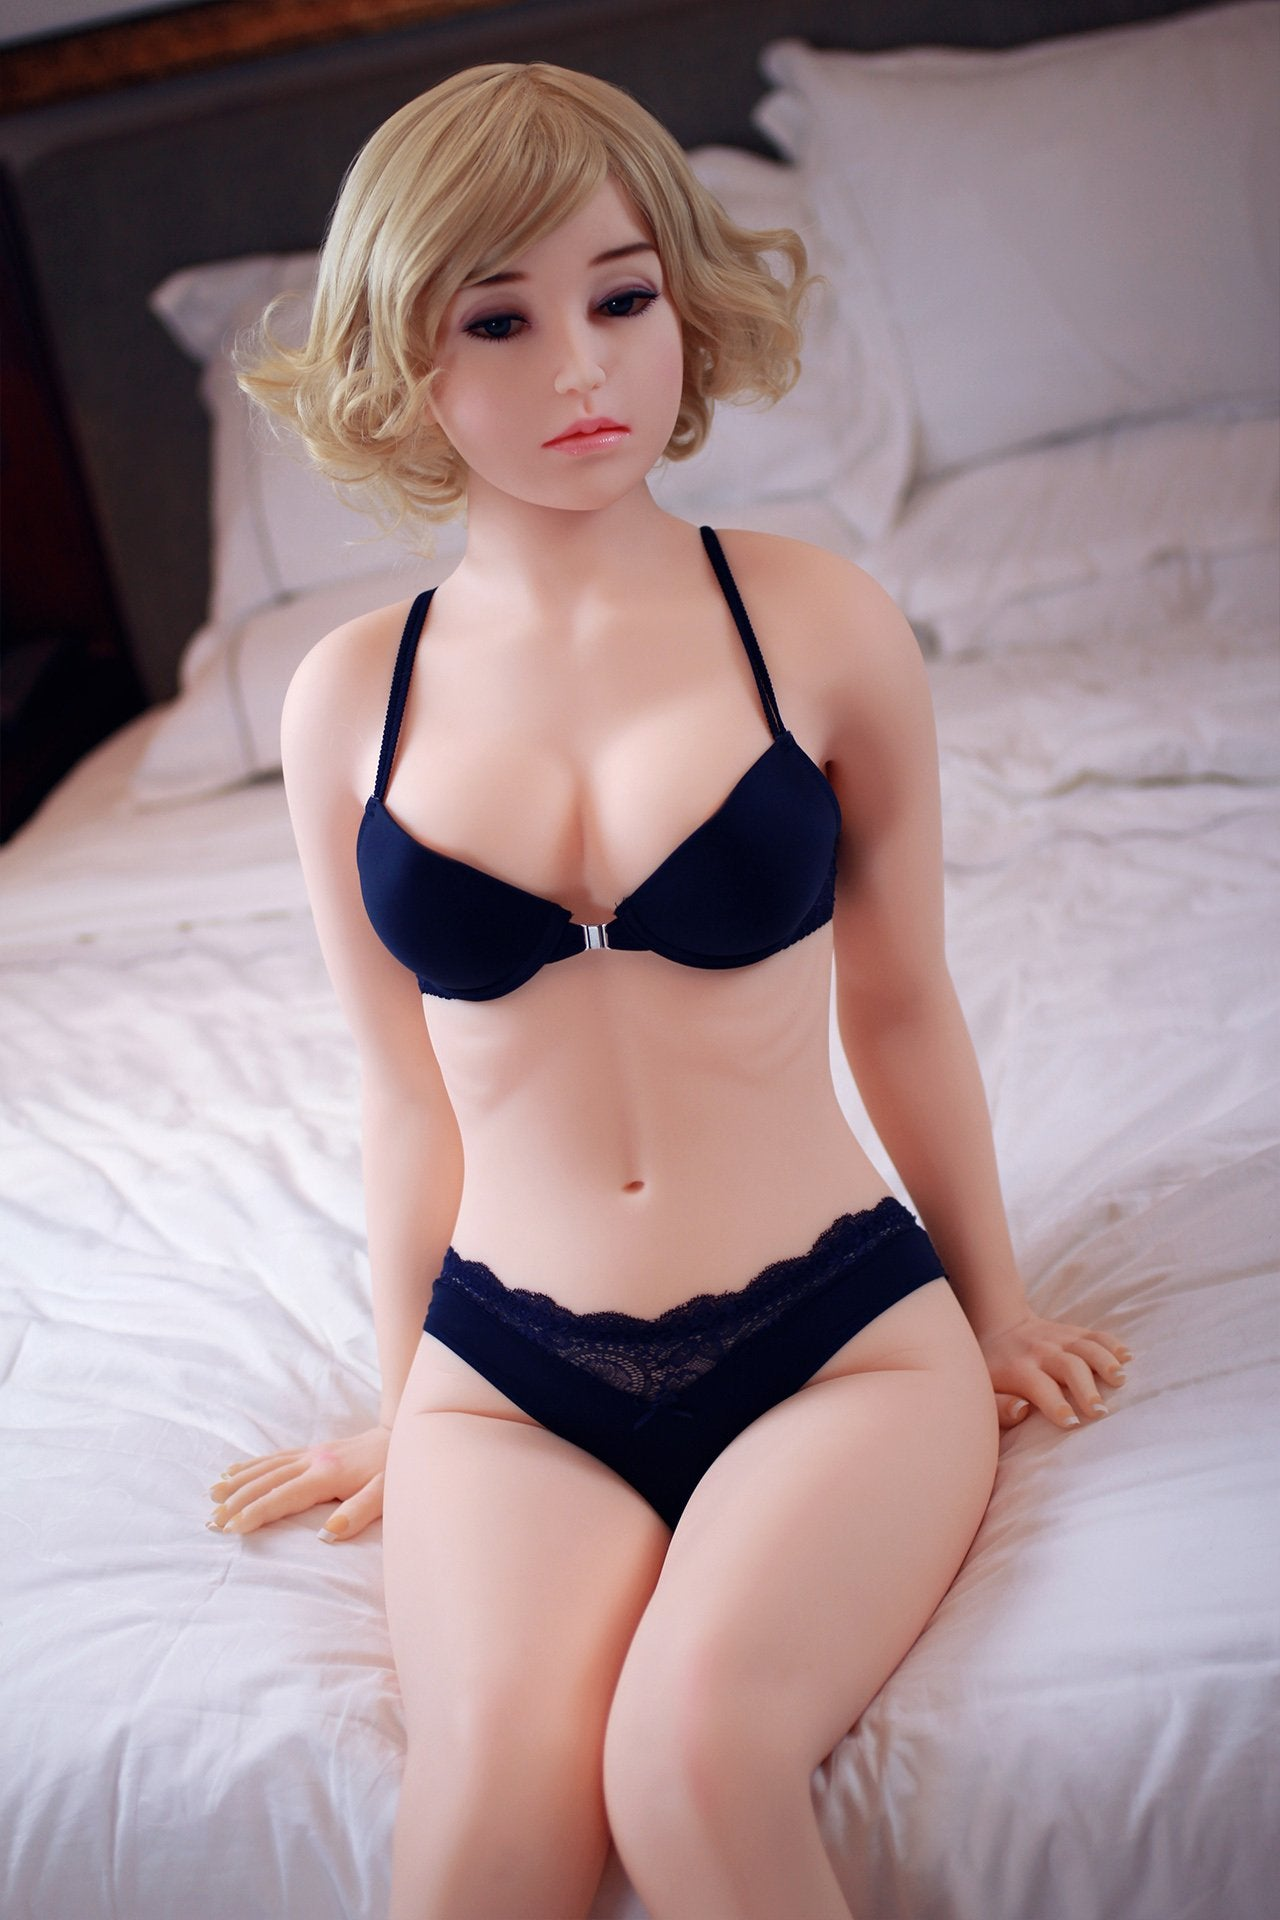 tia 160cm blonde jy skinny flat chested tpe sex doll(13)